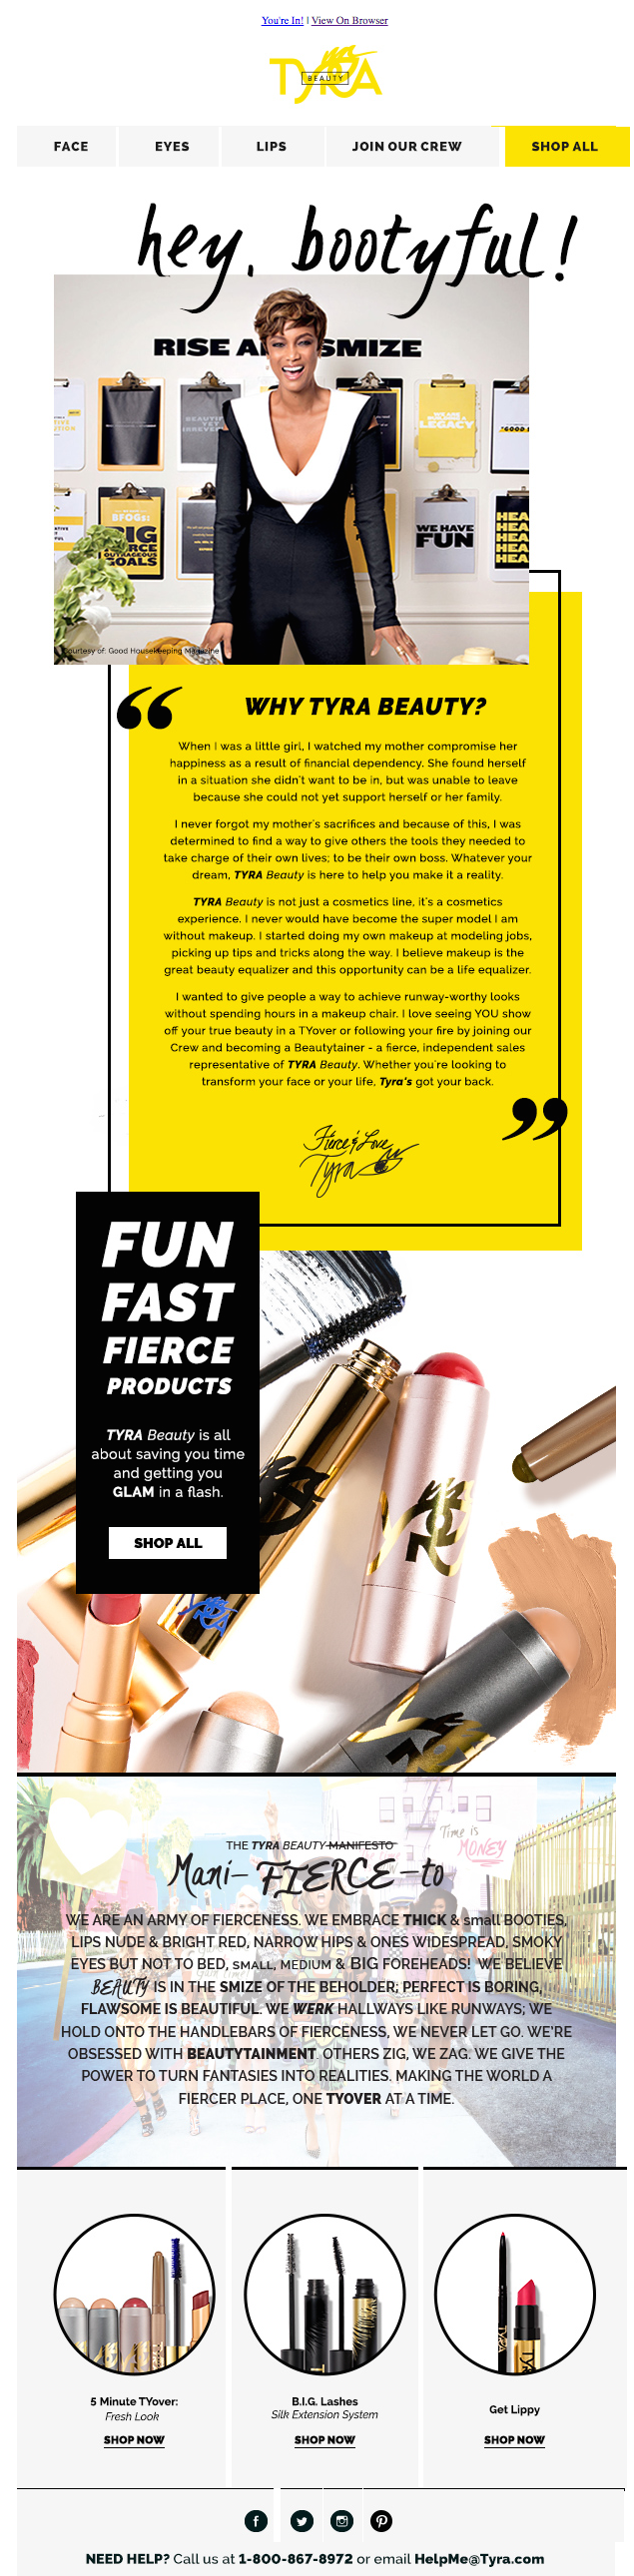 tyra beauty celebrity email newsletters